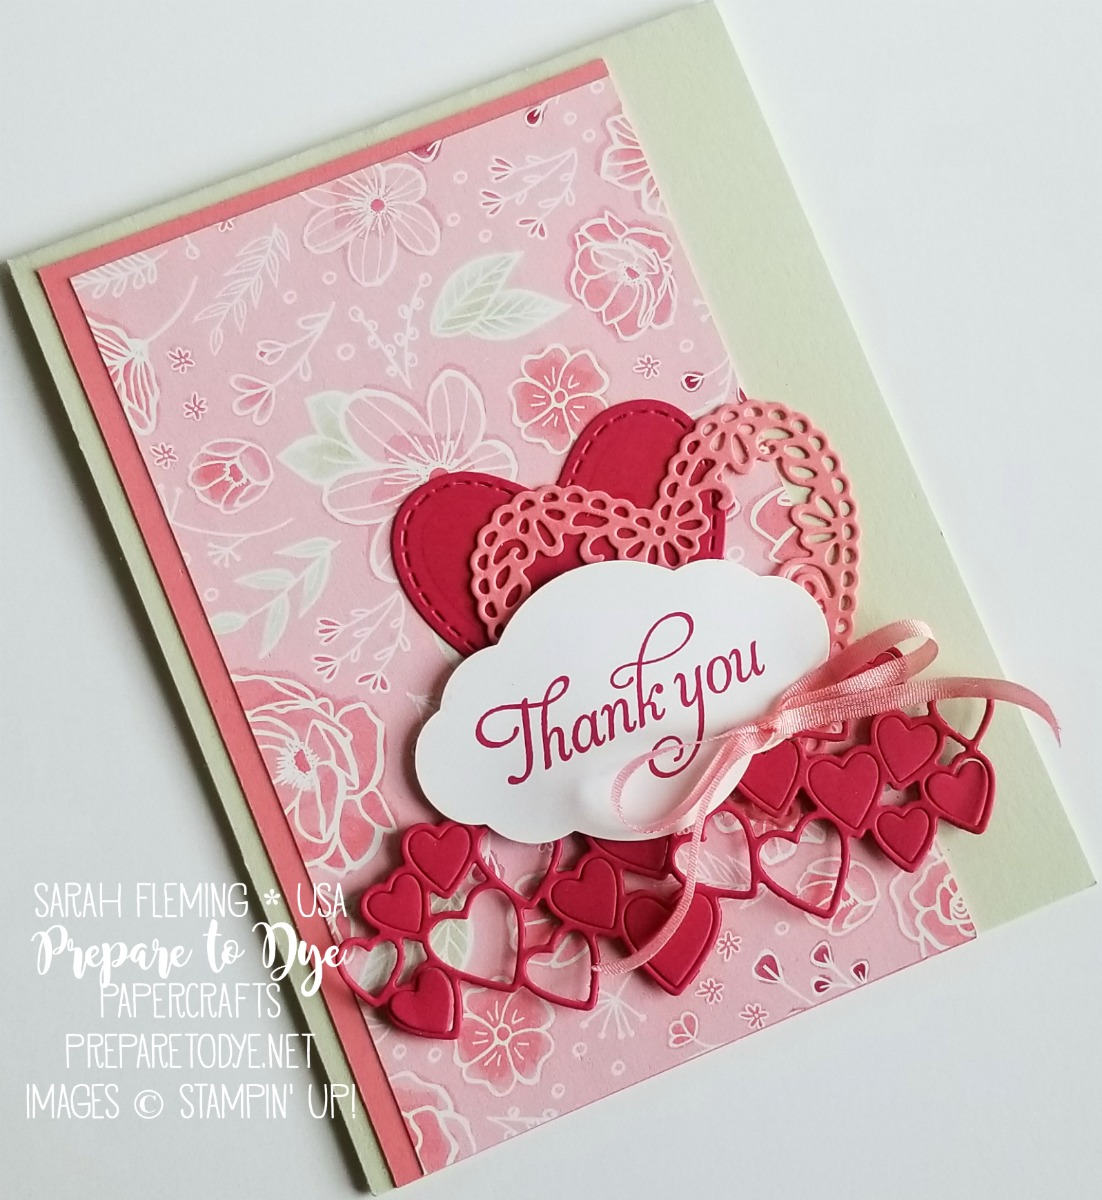 Stampin' Up! handmade thank you card with All My Love paper, Be Mine Stitched framelits dies, Humming Along cling stamp set, Pretty Label punch, All My Love Ribbon - 2019 Occasions Catalog Sneak Peeks - Sarah Fleming - Prepare to Dye Papercrafts